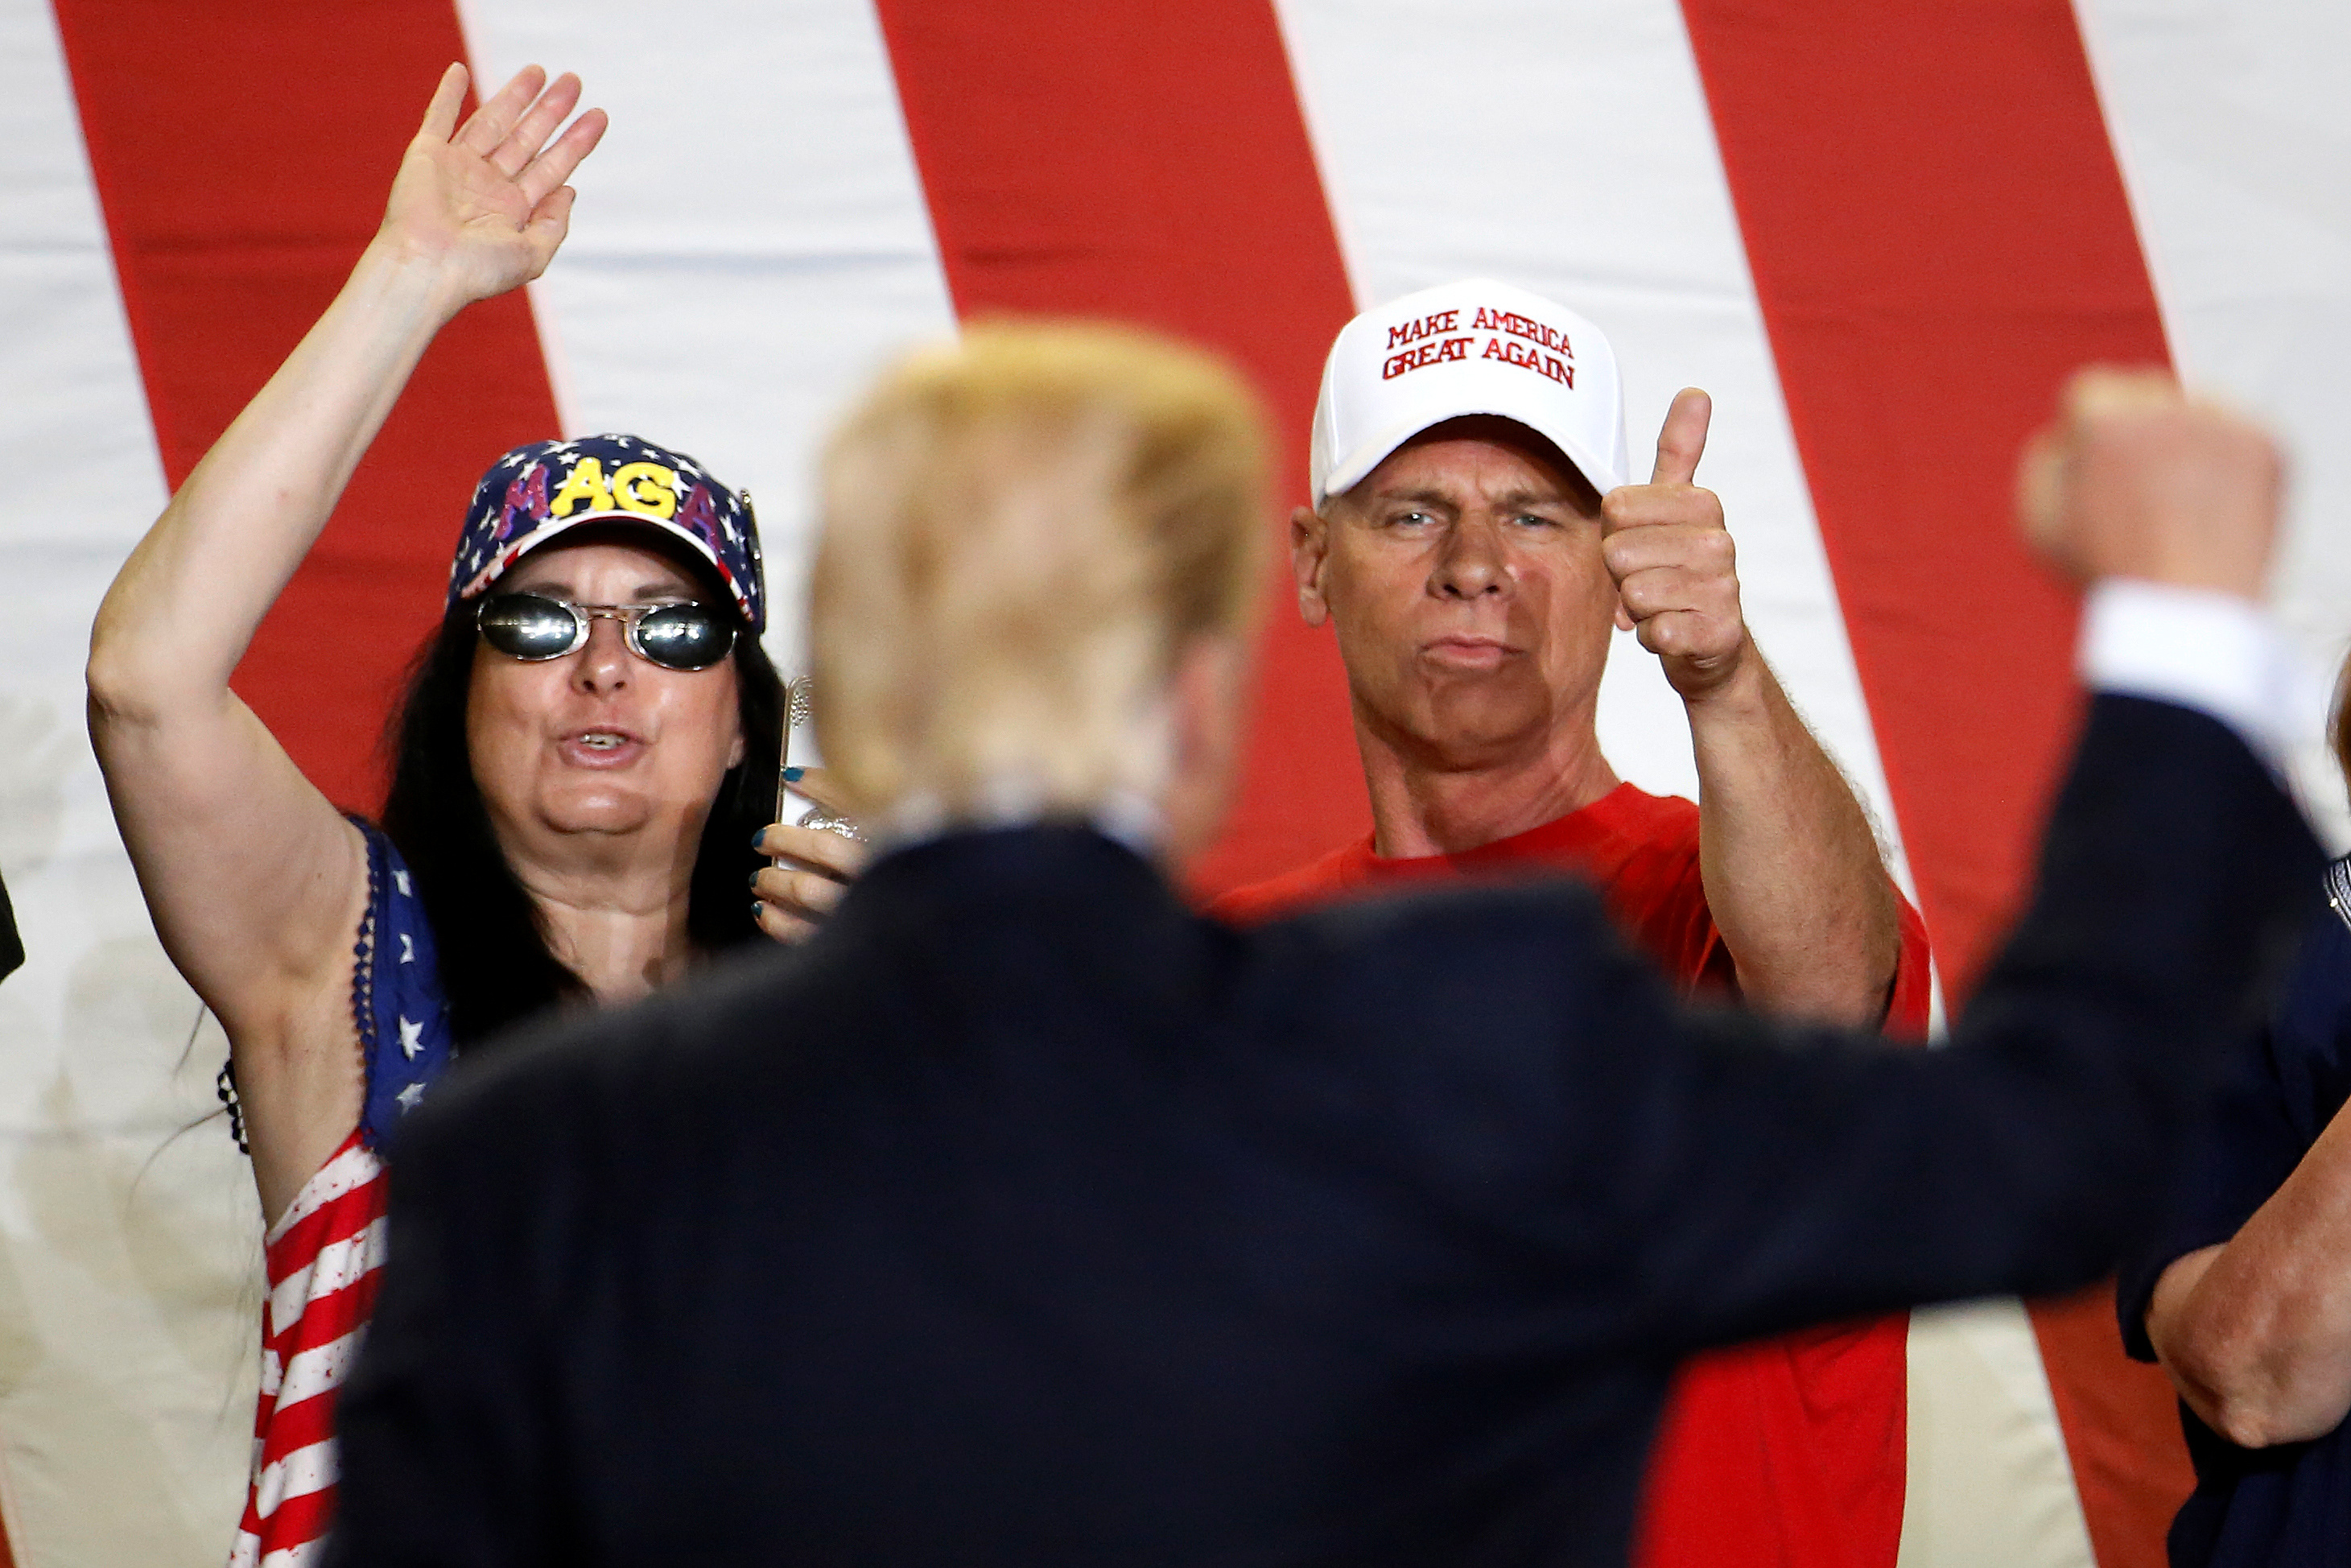 People cheer as US President Donald Trump appears on stage at a rally in Harrisburg, Pennsylvania, US on April 29, 2017.